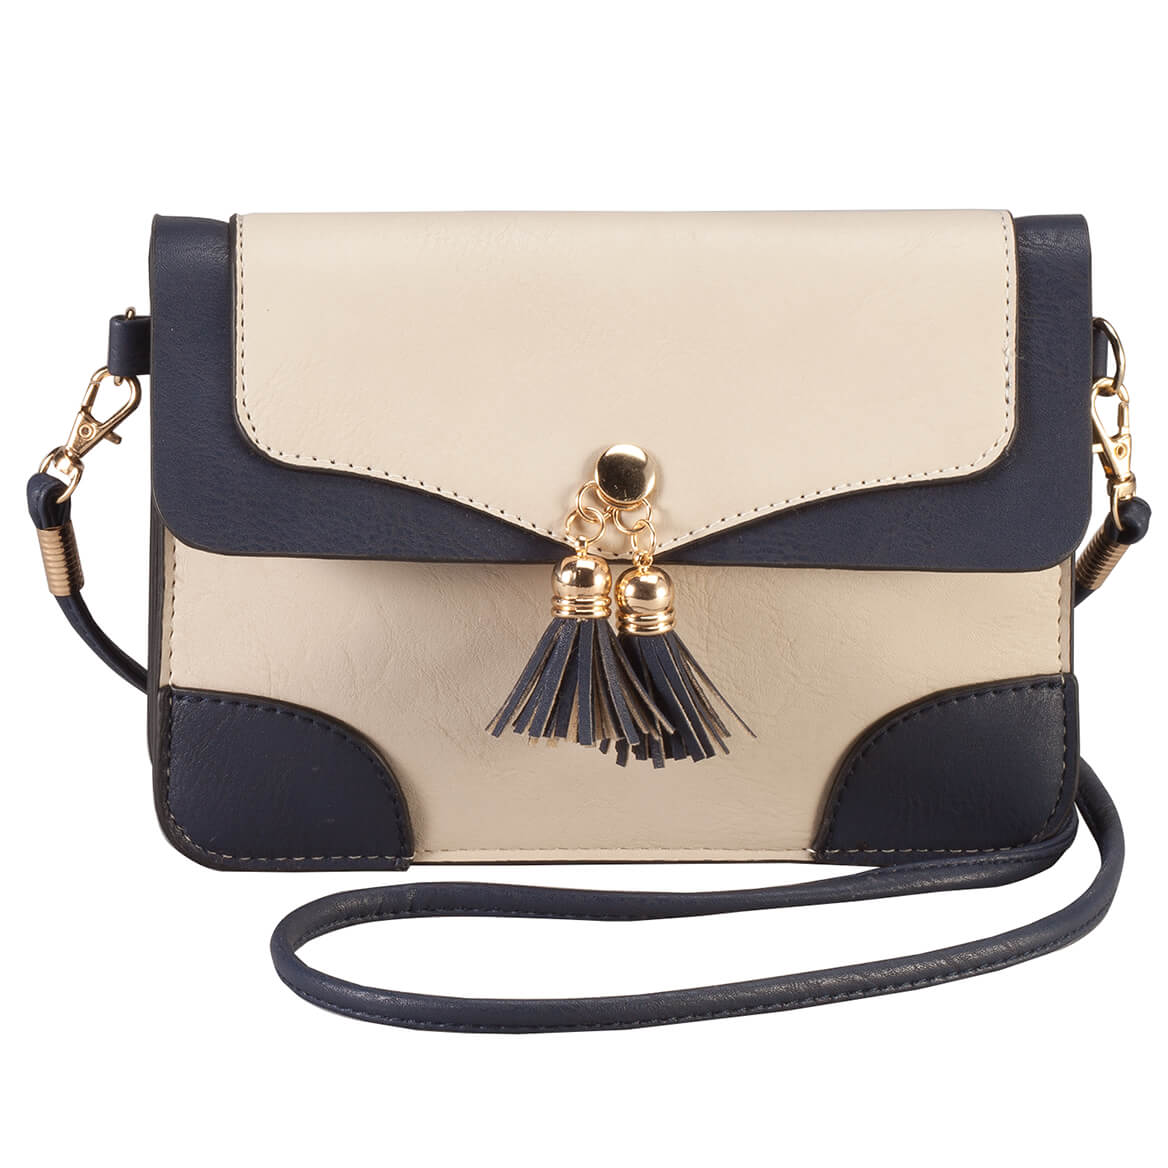 Urban Energy ™ Cross body Bag with Tassels